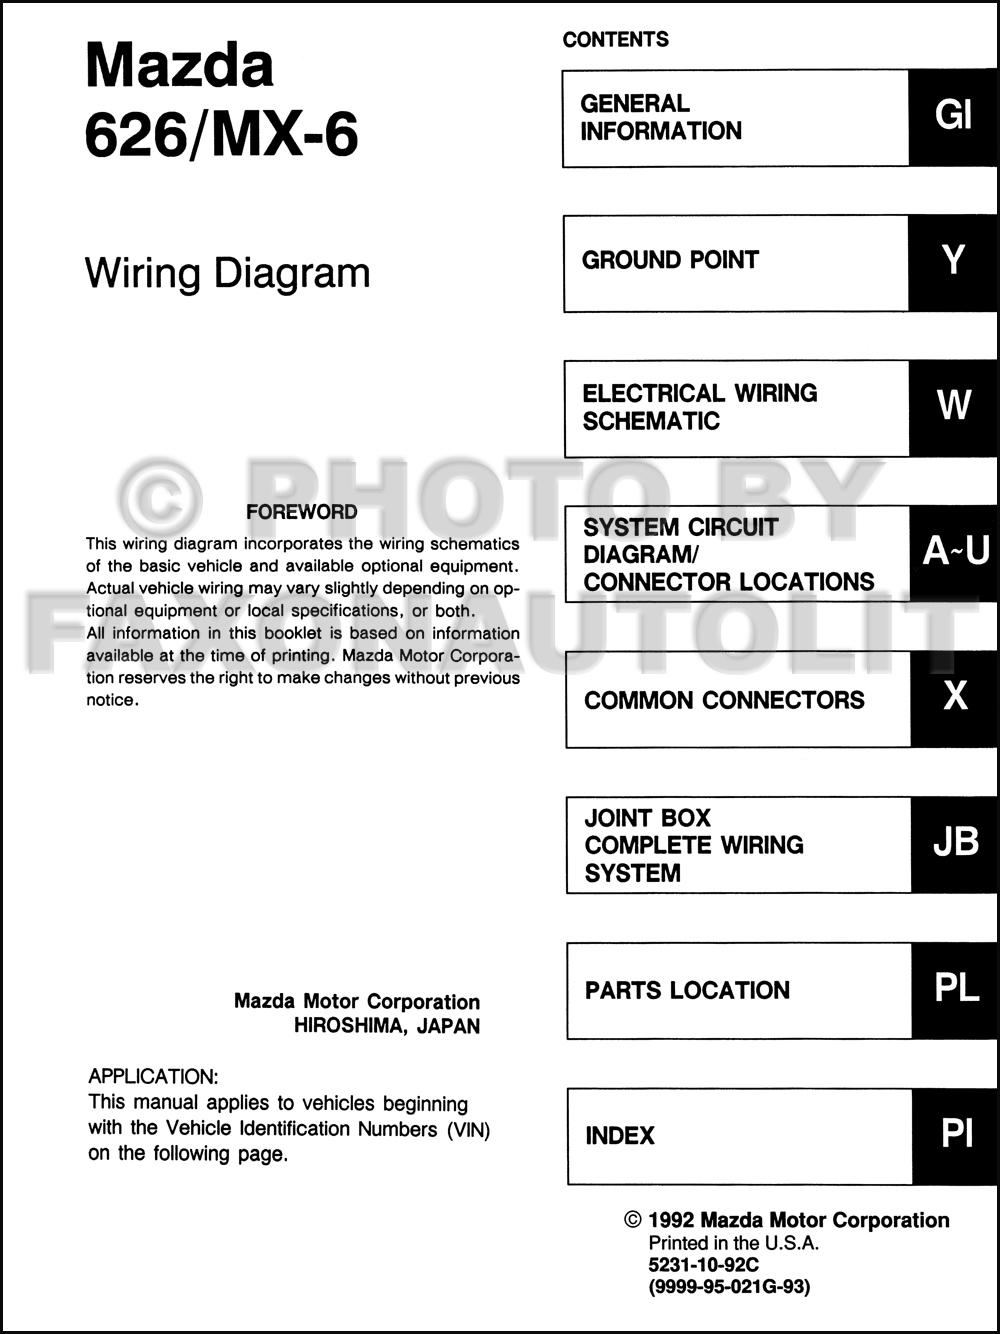 Mazda 626 Electrical Diagram - Wiring Diagrams Clicks on 2000 mazda 626 wiring diagram, 2002 mazda miata wiring diagram, 1999 mazda miata wiring diagram, 2003 mazda tribute wiring diagram, 2008 mazda 6 wiring diagram, 2006 mazda 5 wiring diagram, 1990 mazda 626 wiring diagram, 1999 mazda 626 relay box, 2000 mazda millenia wiring diagram, 2005 mazda 3 wiring diagram, 1998 mazda 626 wiring diagram, 2002 mazda millenia wiring diagram, 2000 mazda miata wiring diagram, 1999 mazda 626 thermostat replacement, 1991 mazda 626 wiring diagram, 1999 mazda 626 electrical problems, 1999 mazda 626 horn fuse, 2001 mazda 626 wiring diagram, 2010 mazda 6 wiring diagram, 1999 mazda 626 firing order,